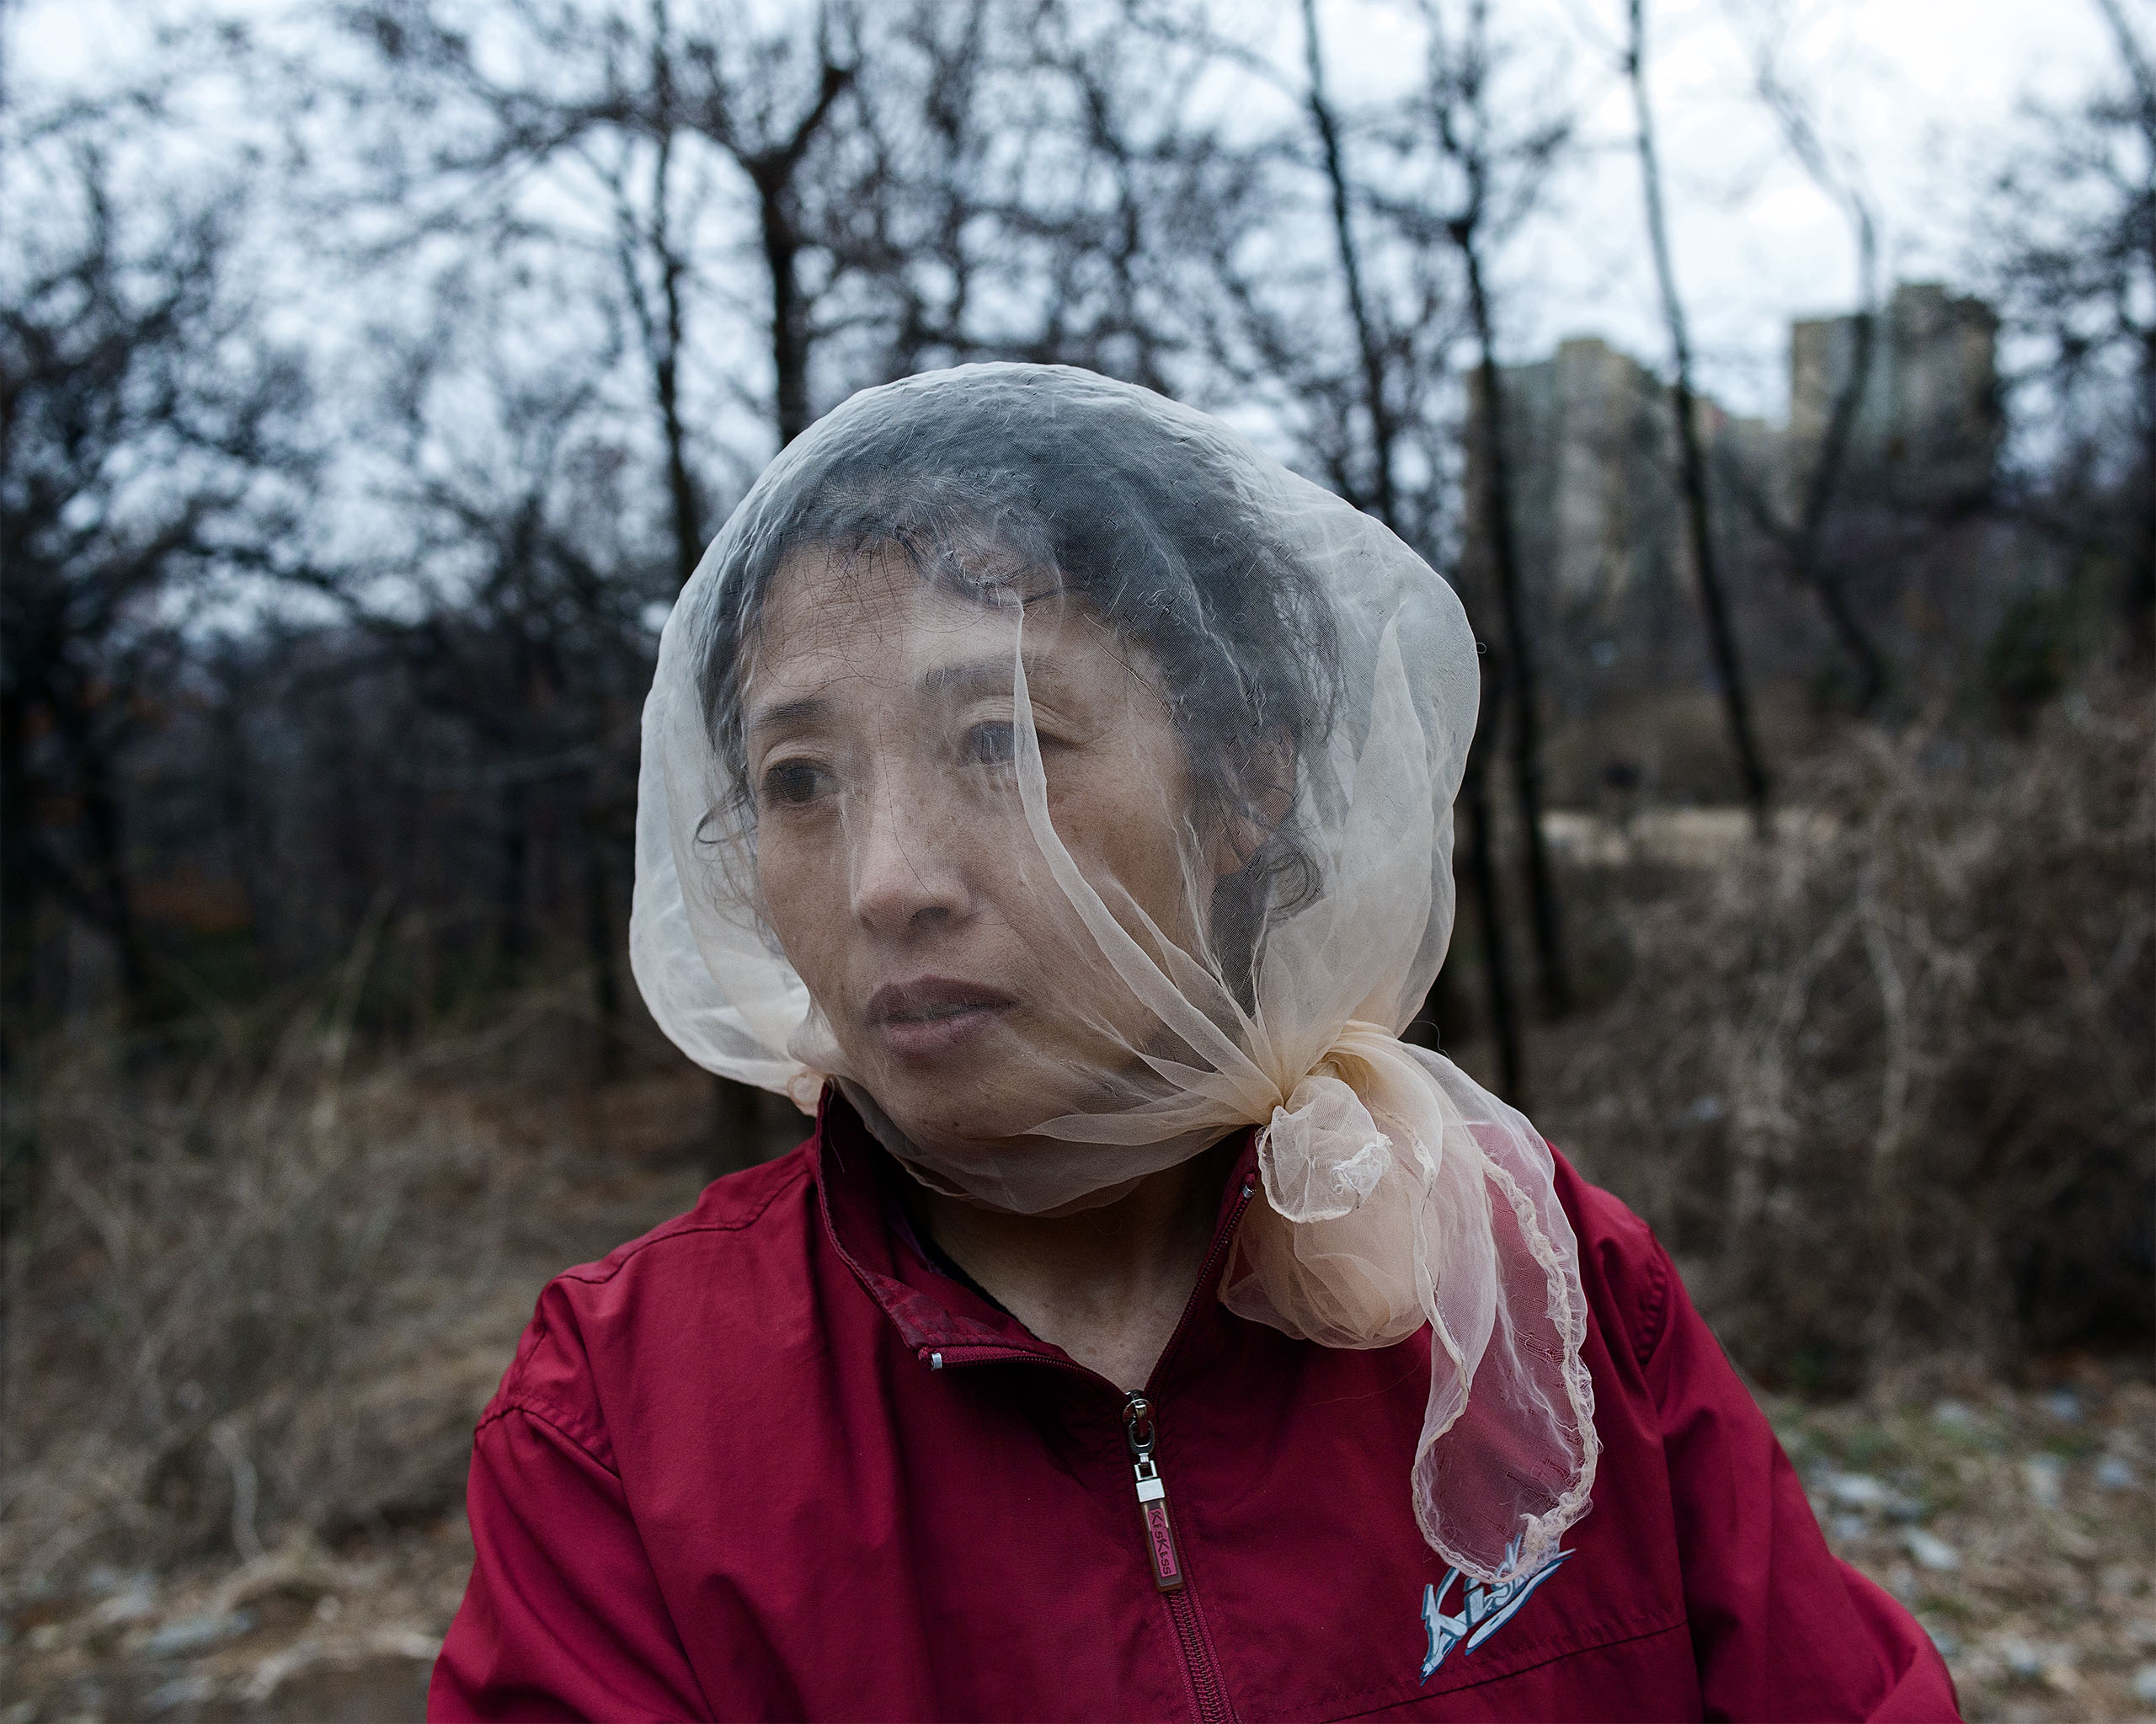 A woman in Dandong, China covers her face with a piece of cloth to protect from mosquitos.  In China's border cities, there is a normality to daily life which stands  in contrast to  the deprivation across the  border.